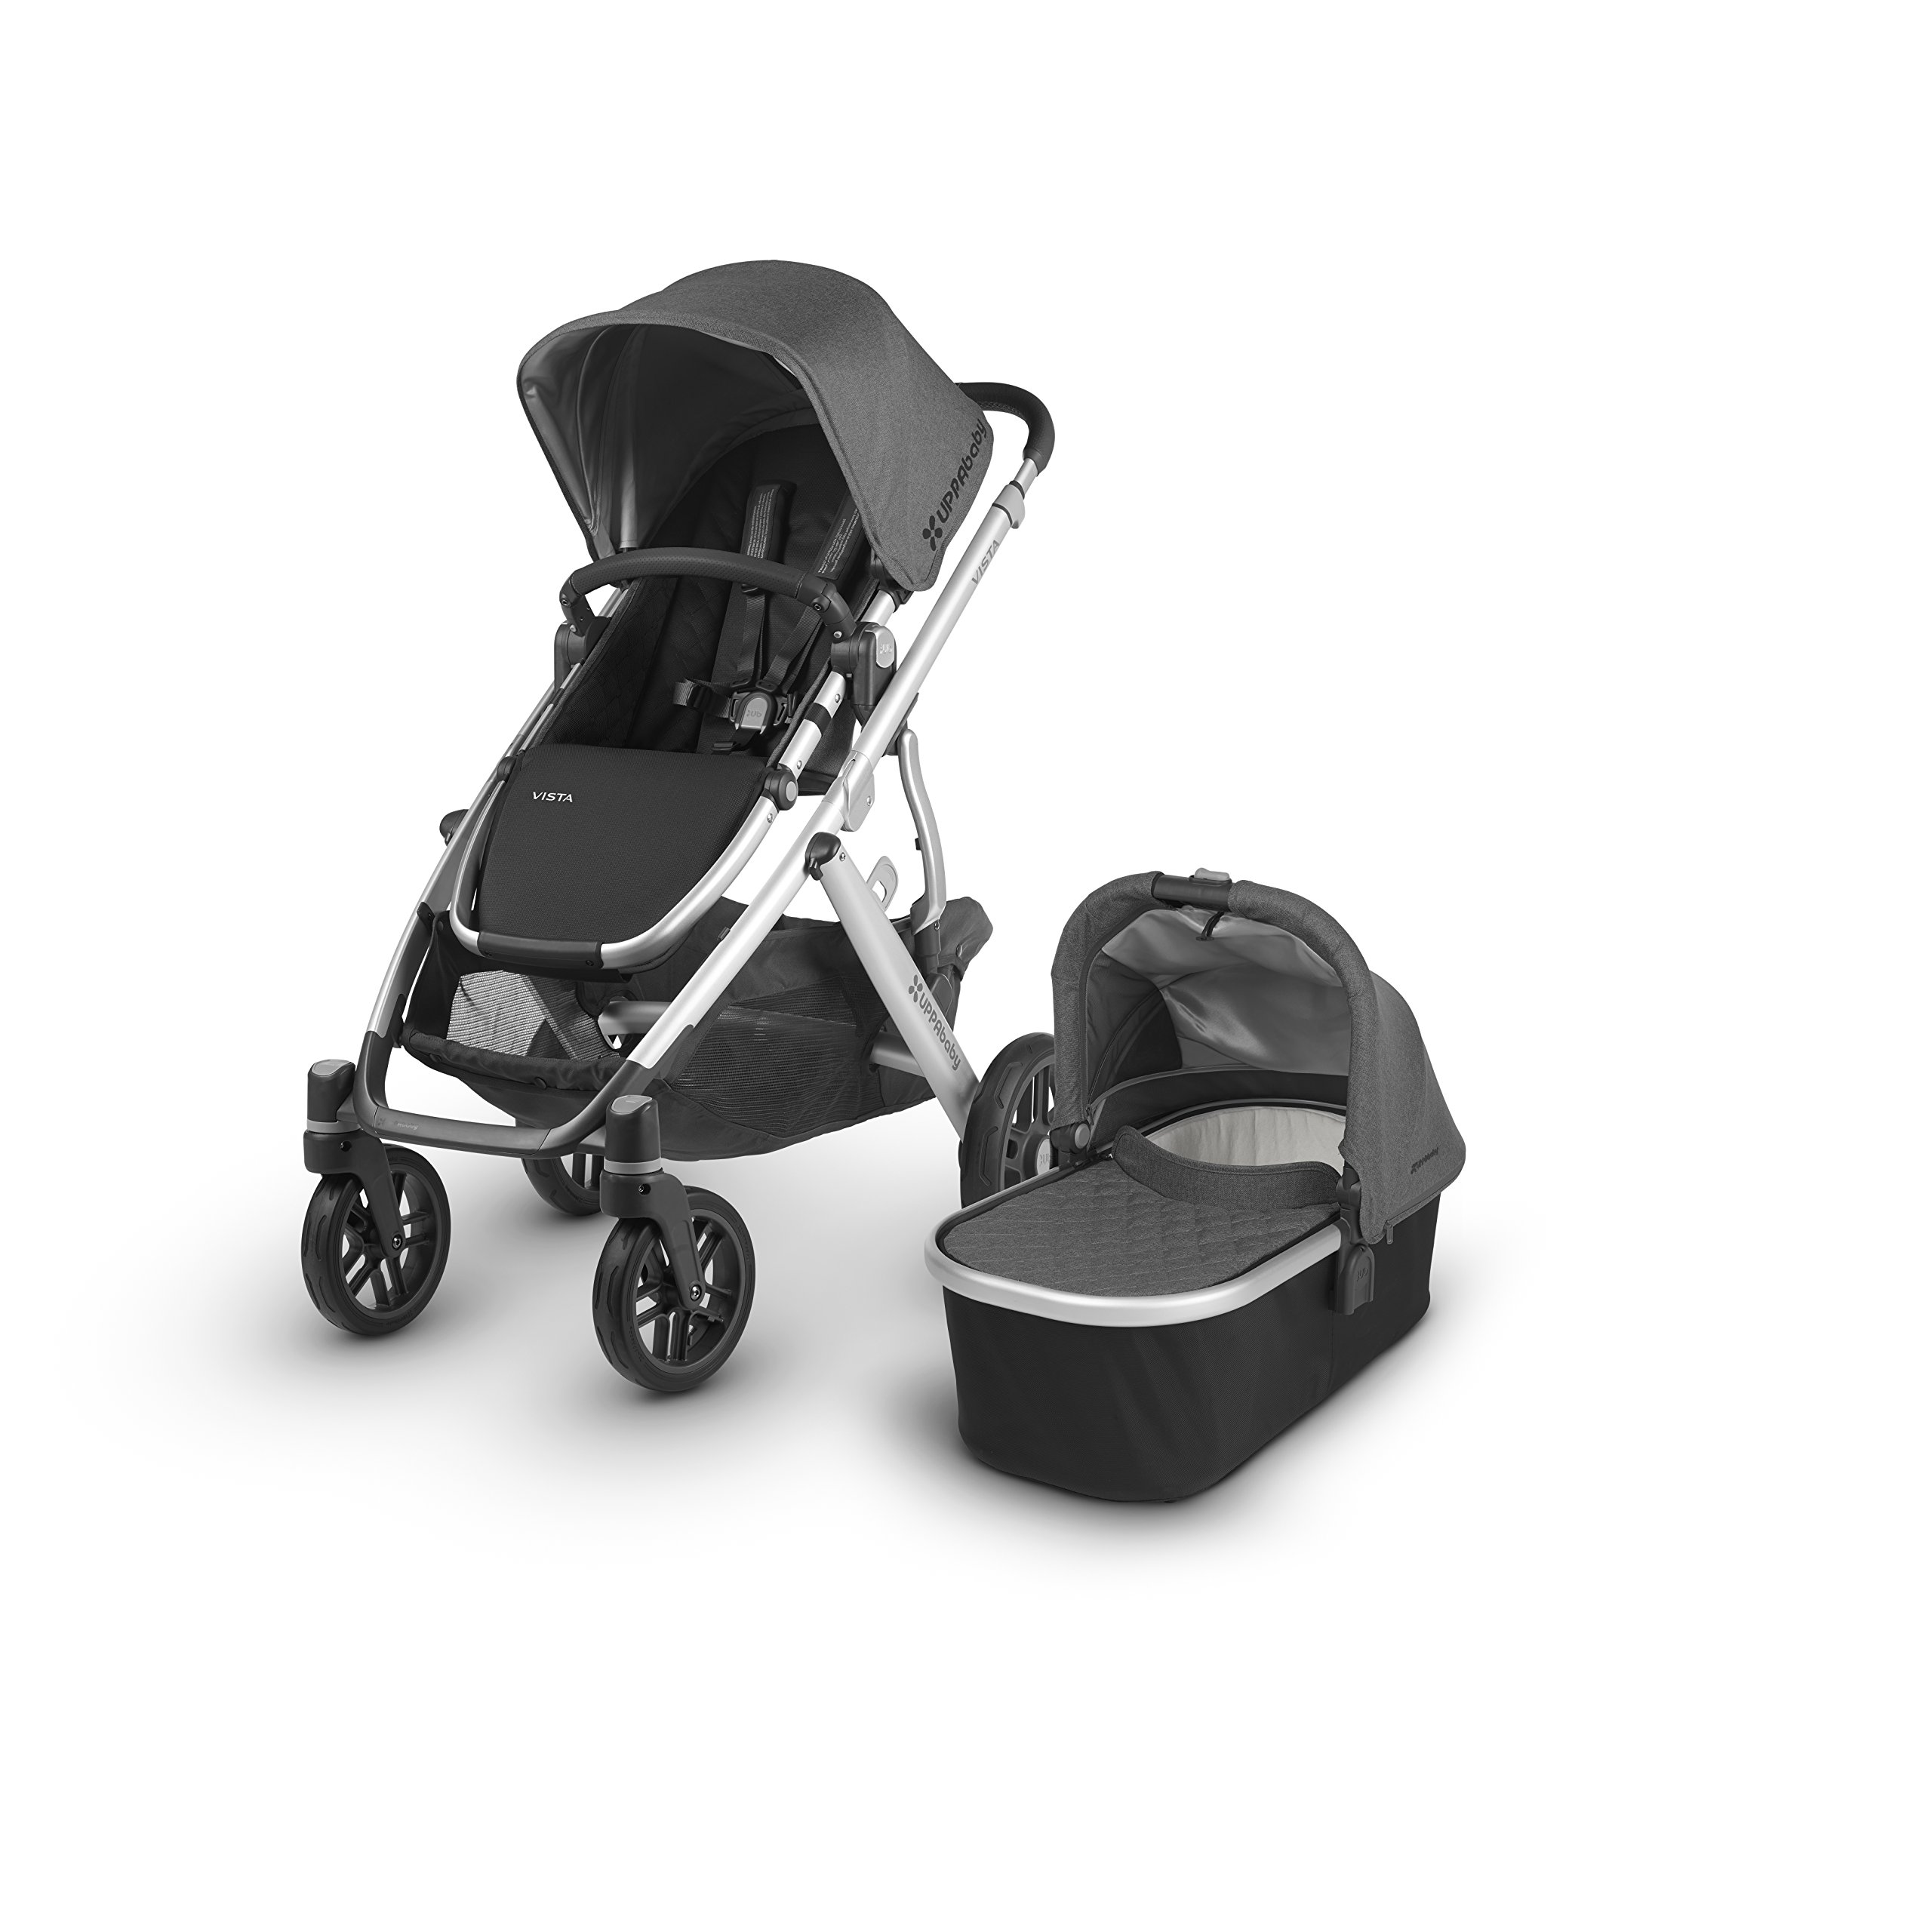 2018 UPPAbaby Vista Stroller -Jordan (Charcoal Melange/Silver/Black Leather) by UPPAbaby